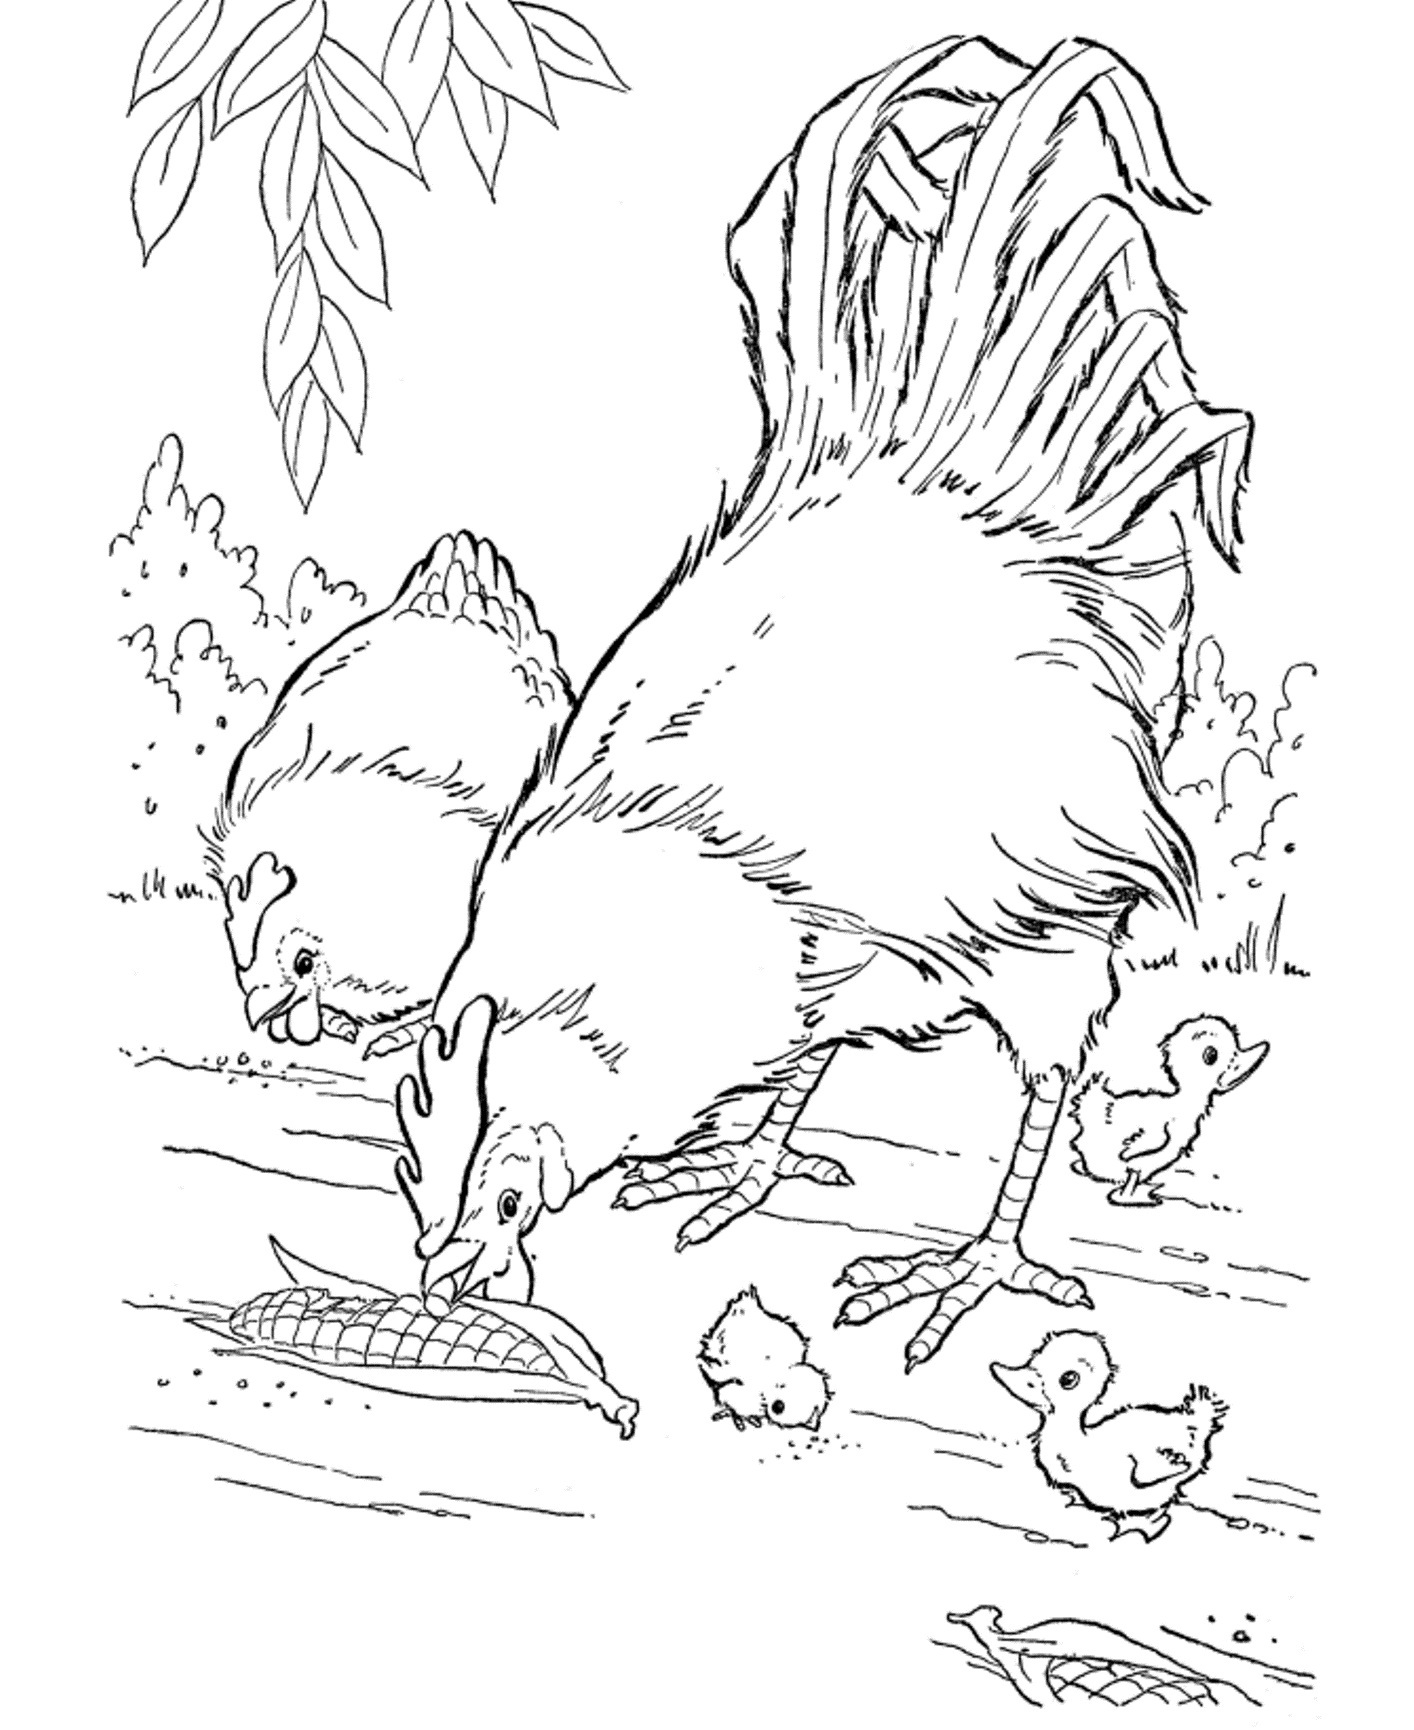 picture about Printable Farm Coloring Pages identified as Absolutely free Printable Farm Animal Coloring Web pages For Children